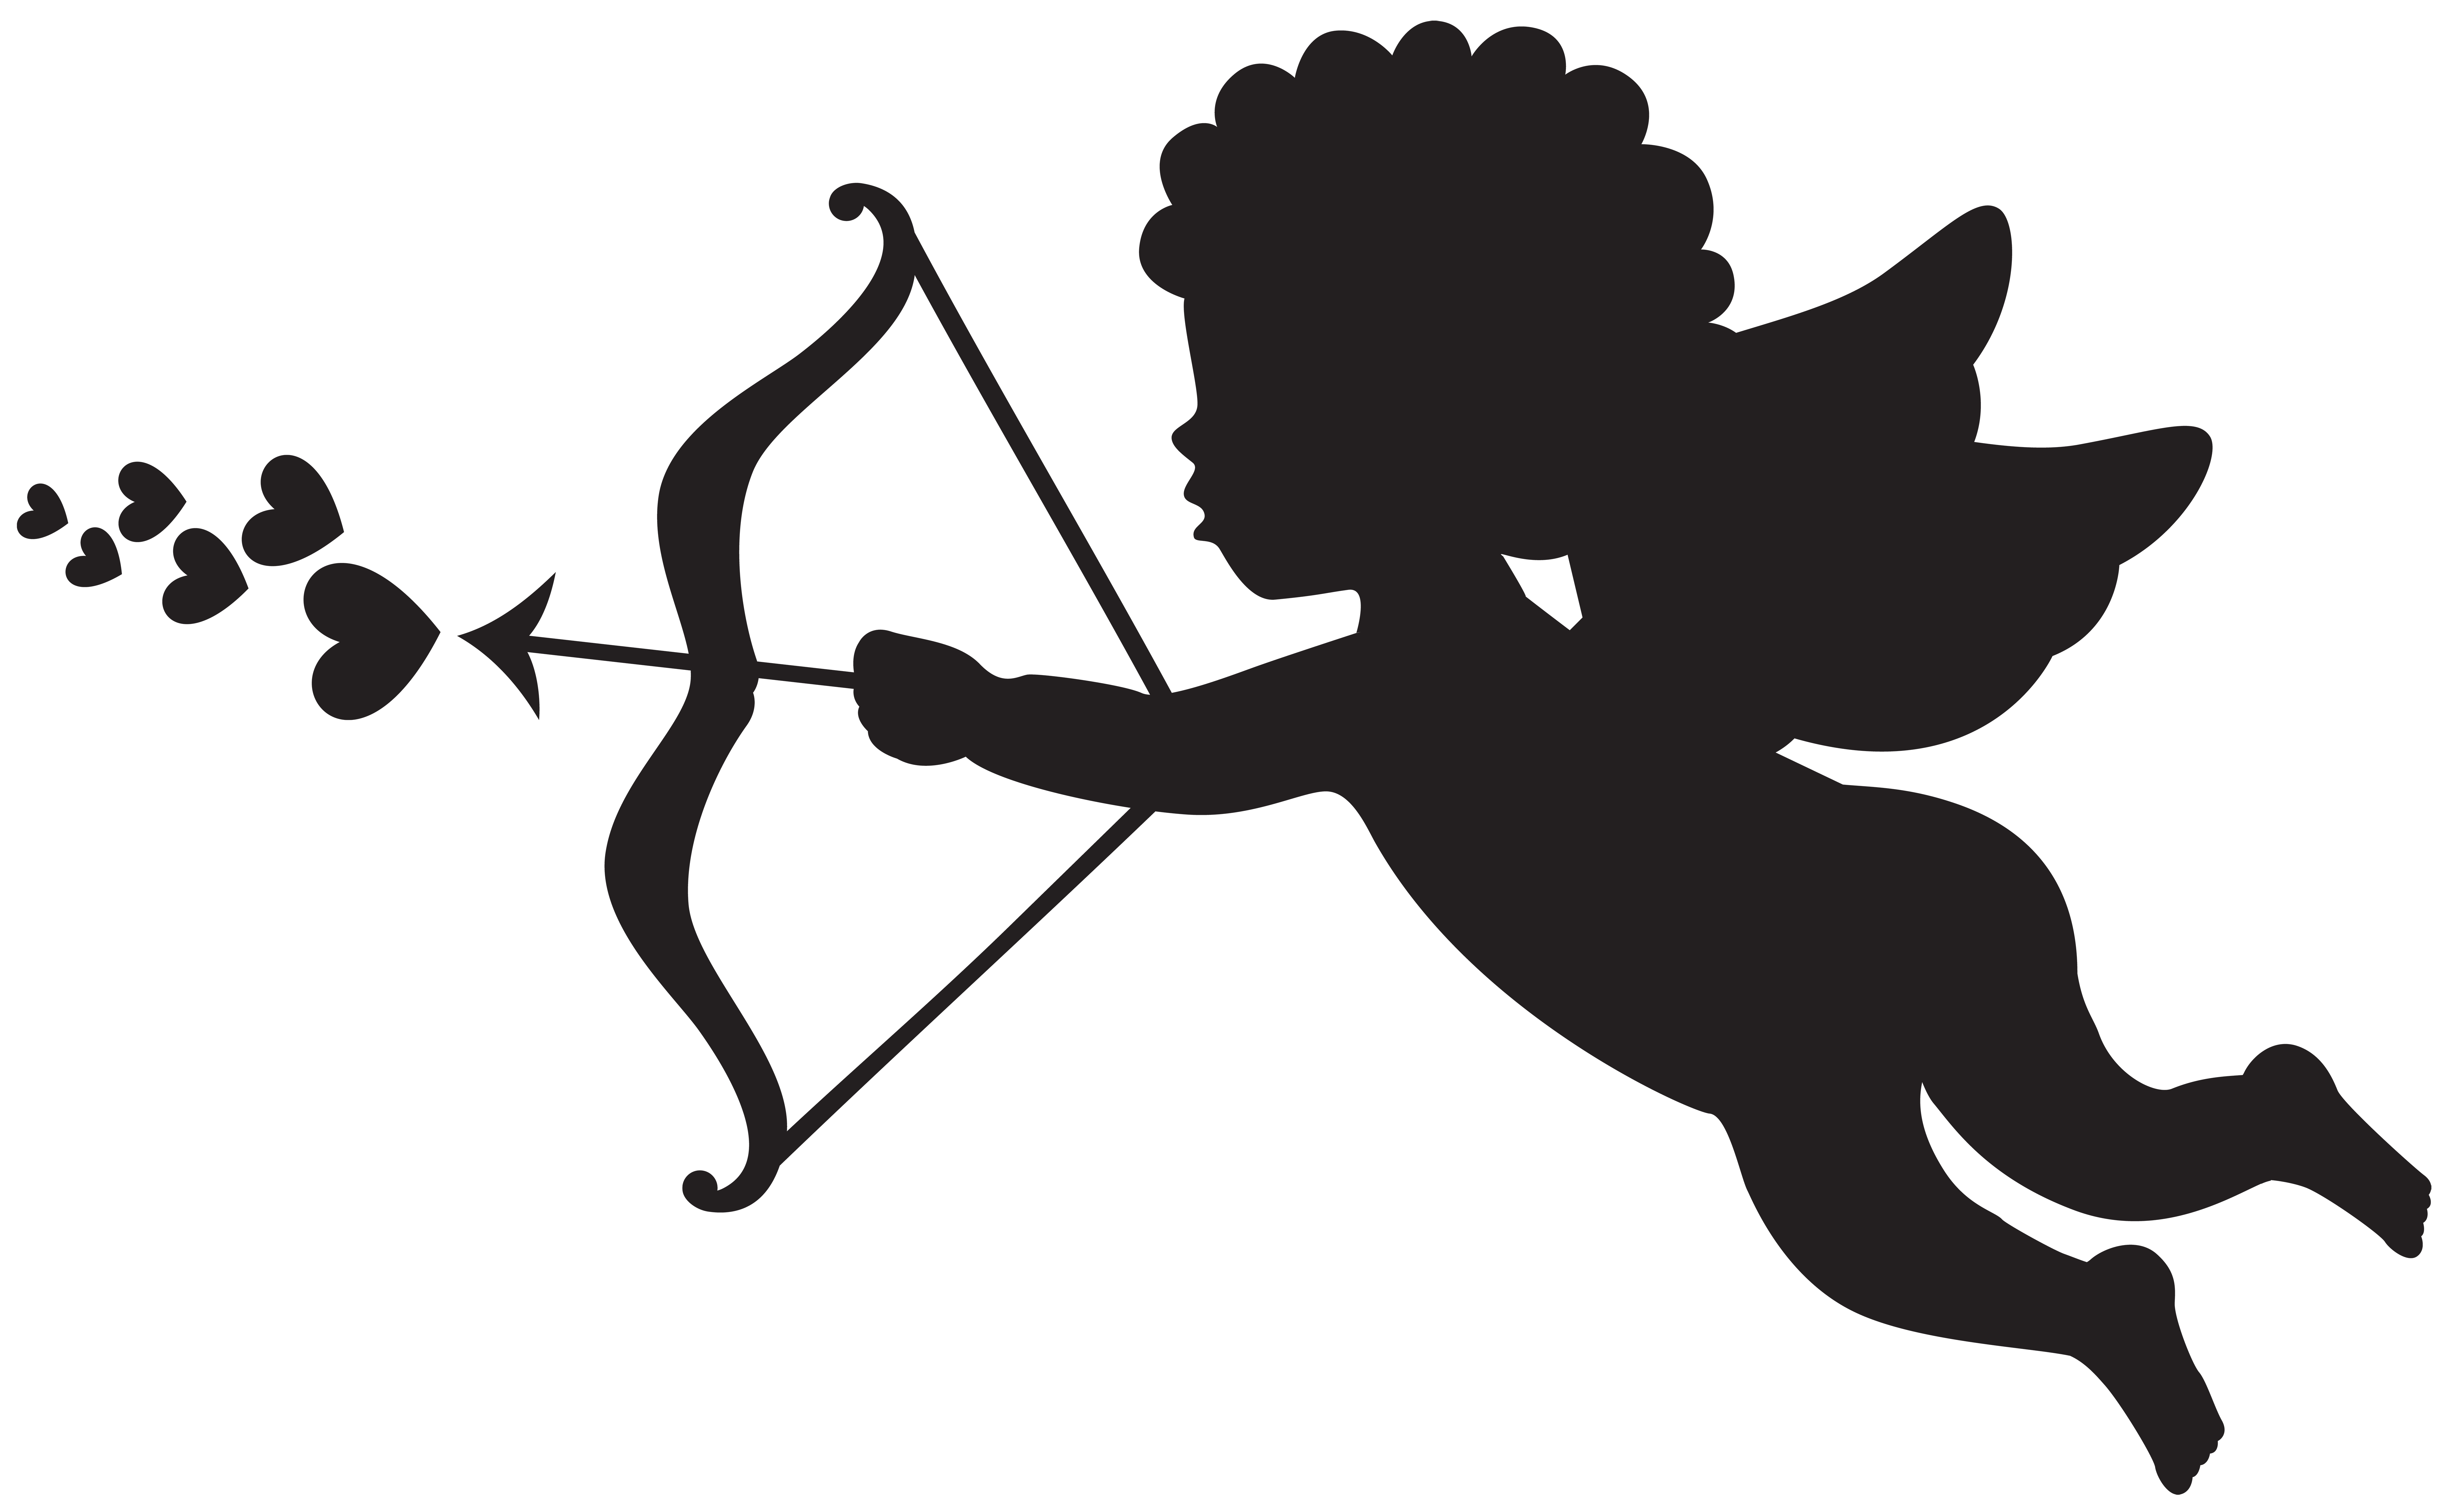 Pole vault clipart images vector download Cupid Silhouette PNG Clip Art   Gallery Yopriceville - High-Quality ... vector download